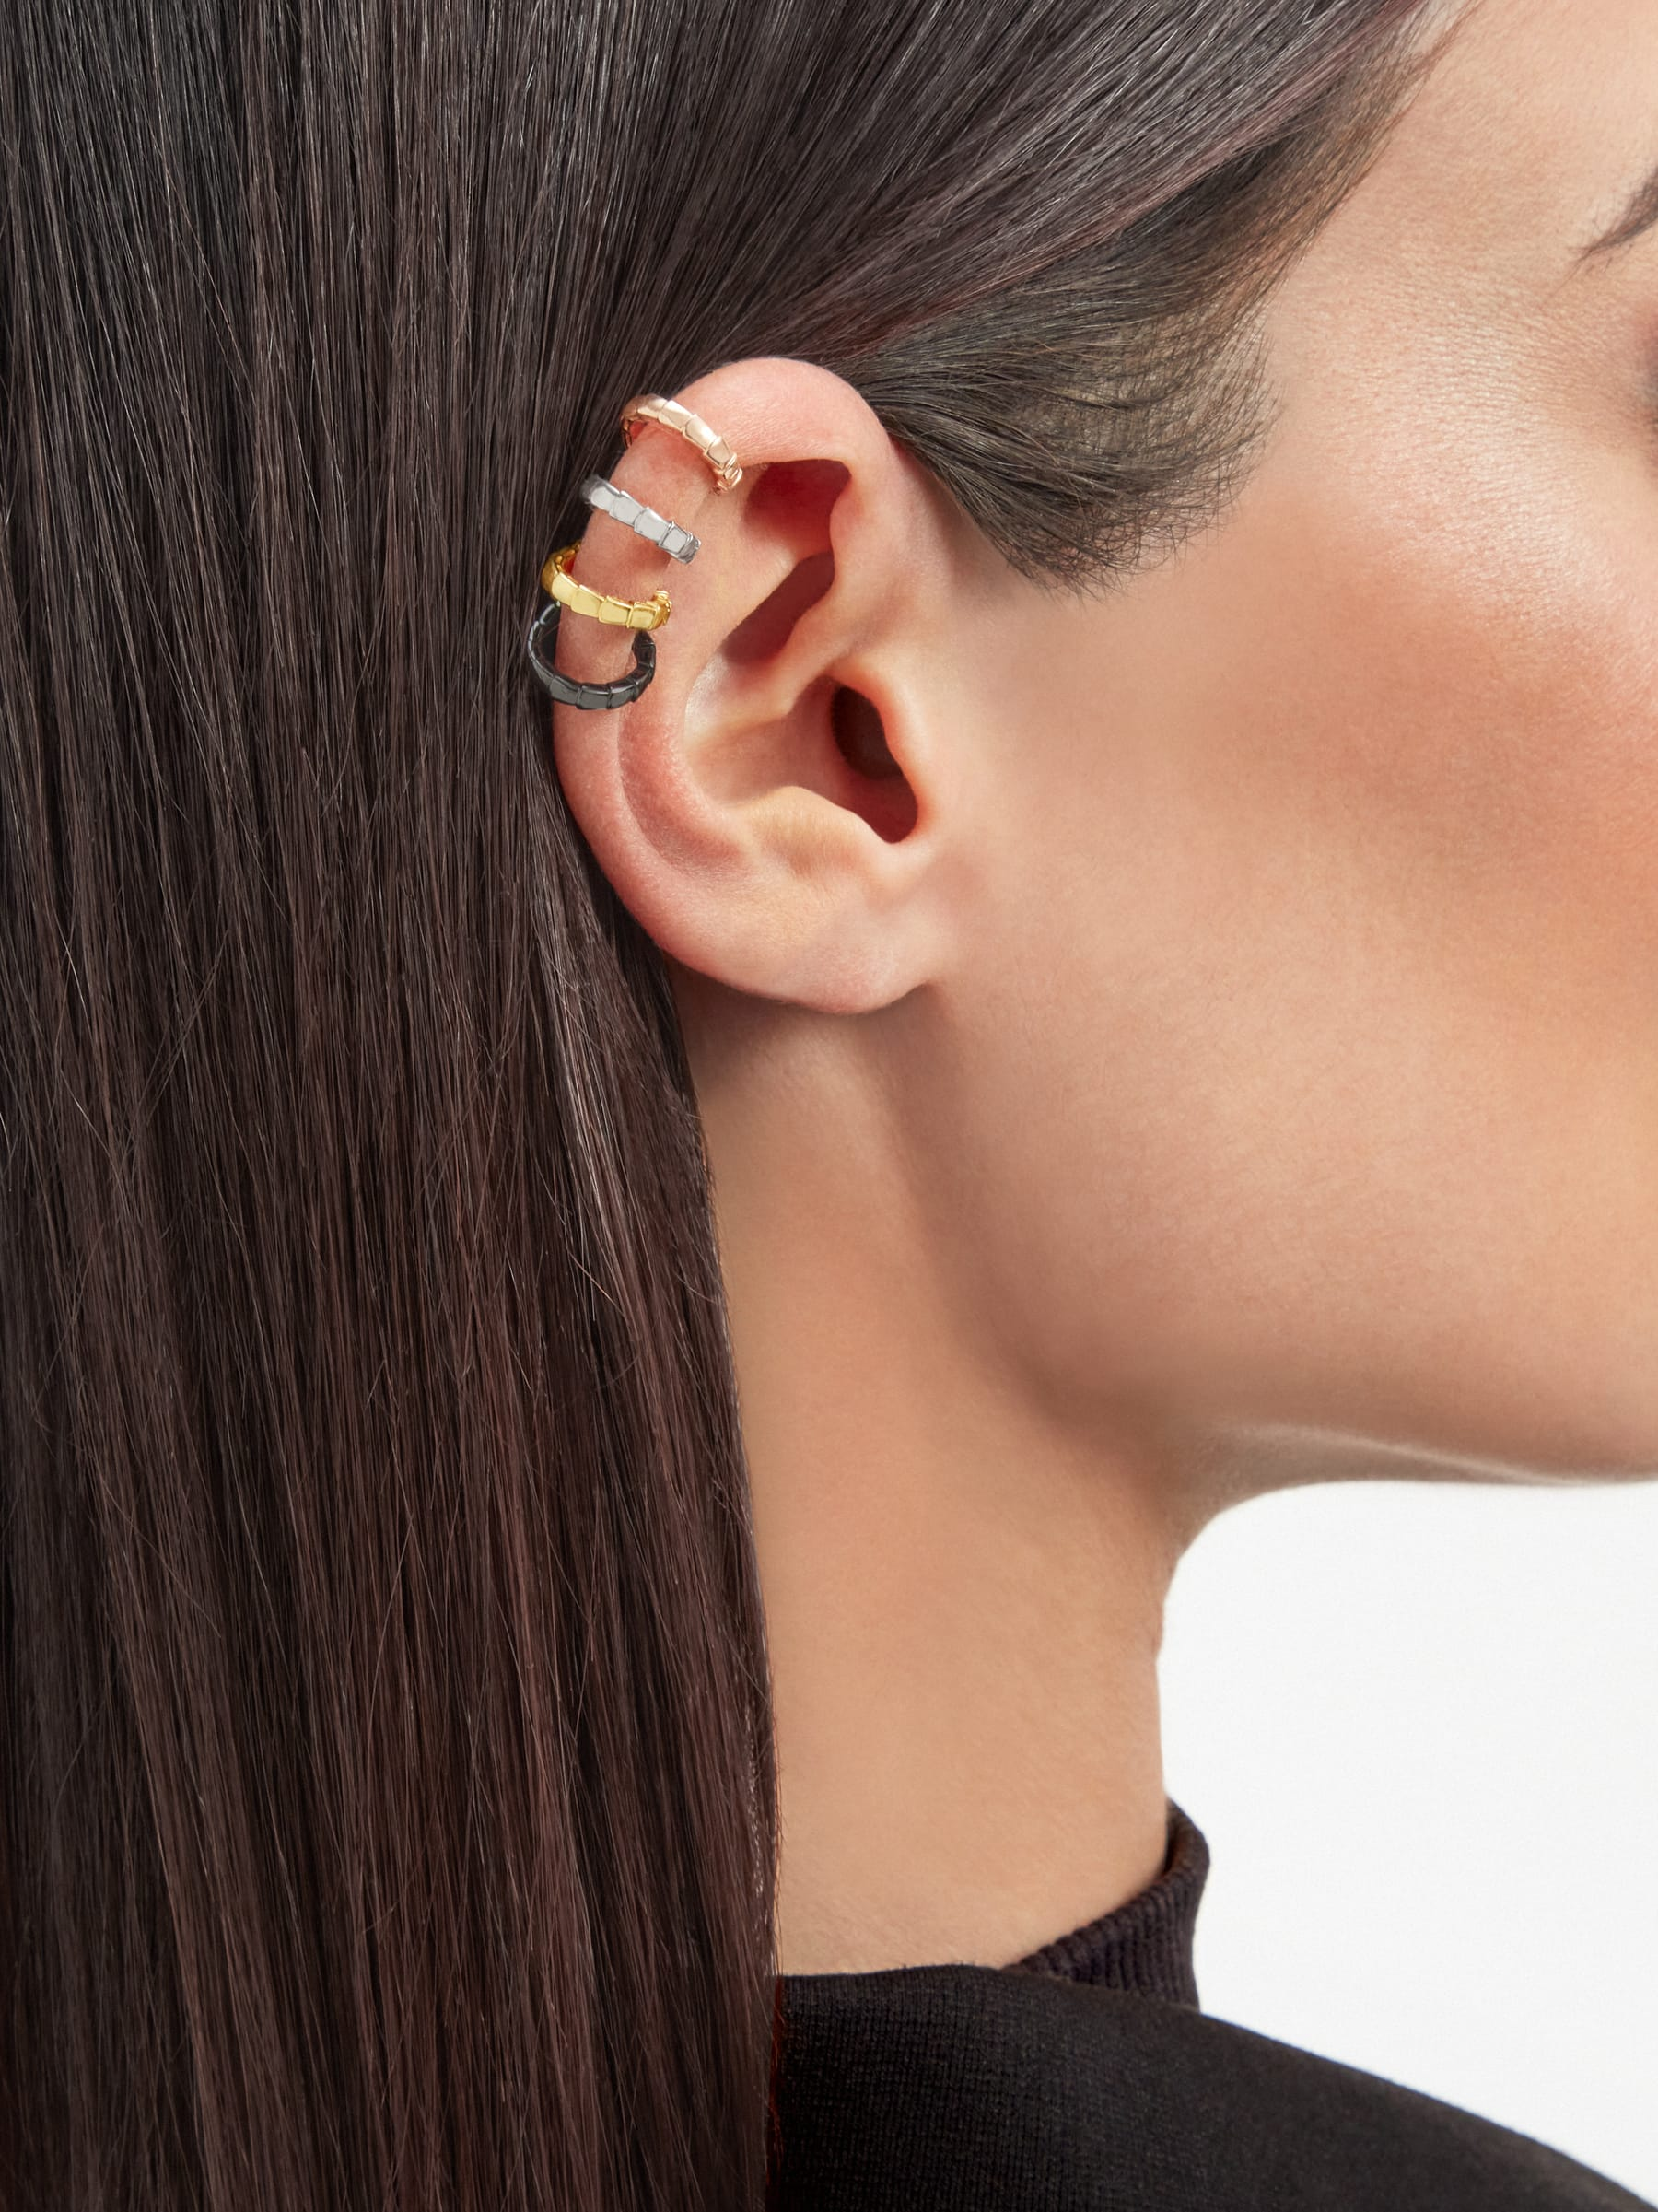 Serpenti Viper Viper single earring in 18 kt rose, white and yellow gold, and black rhodium 356173 image 3